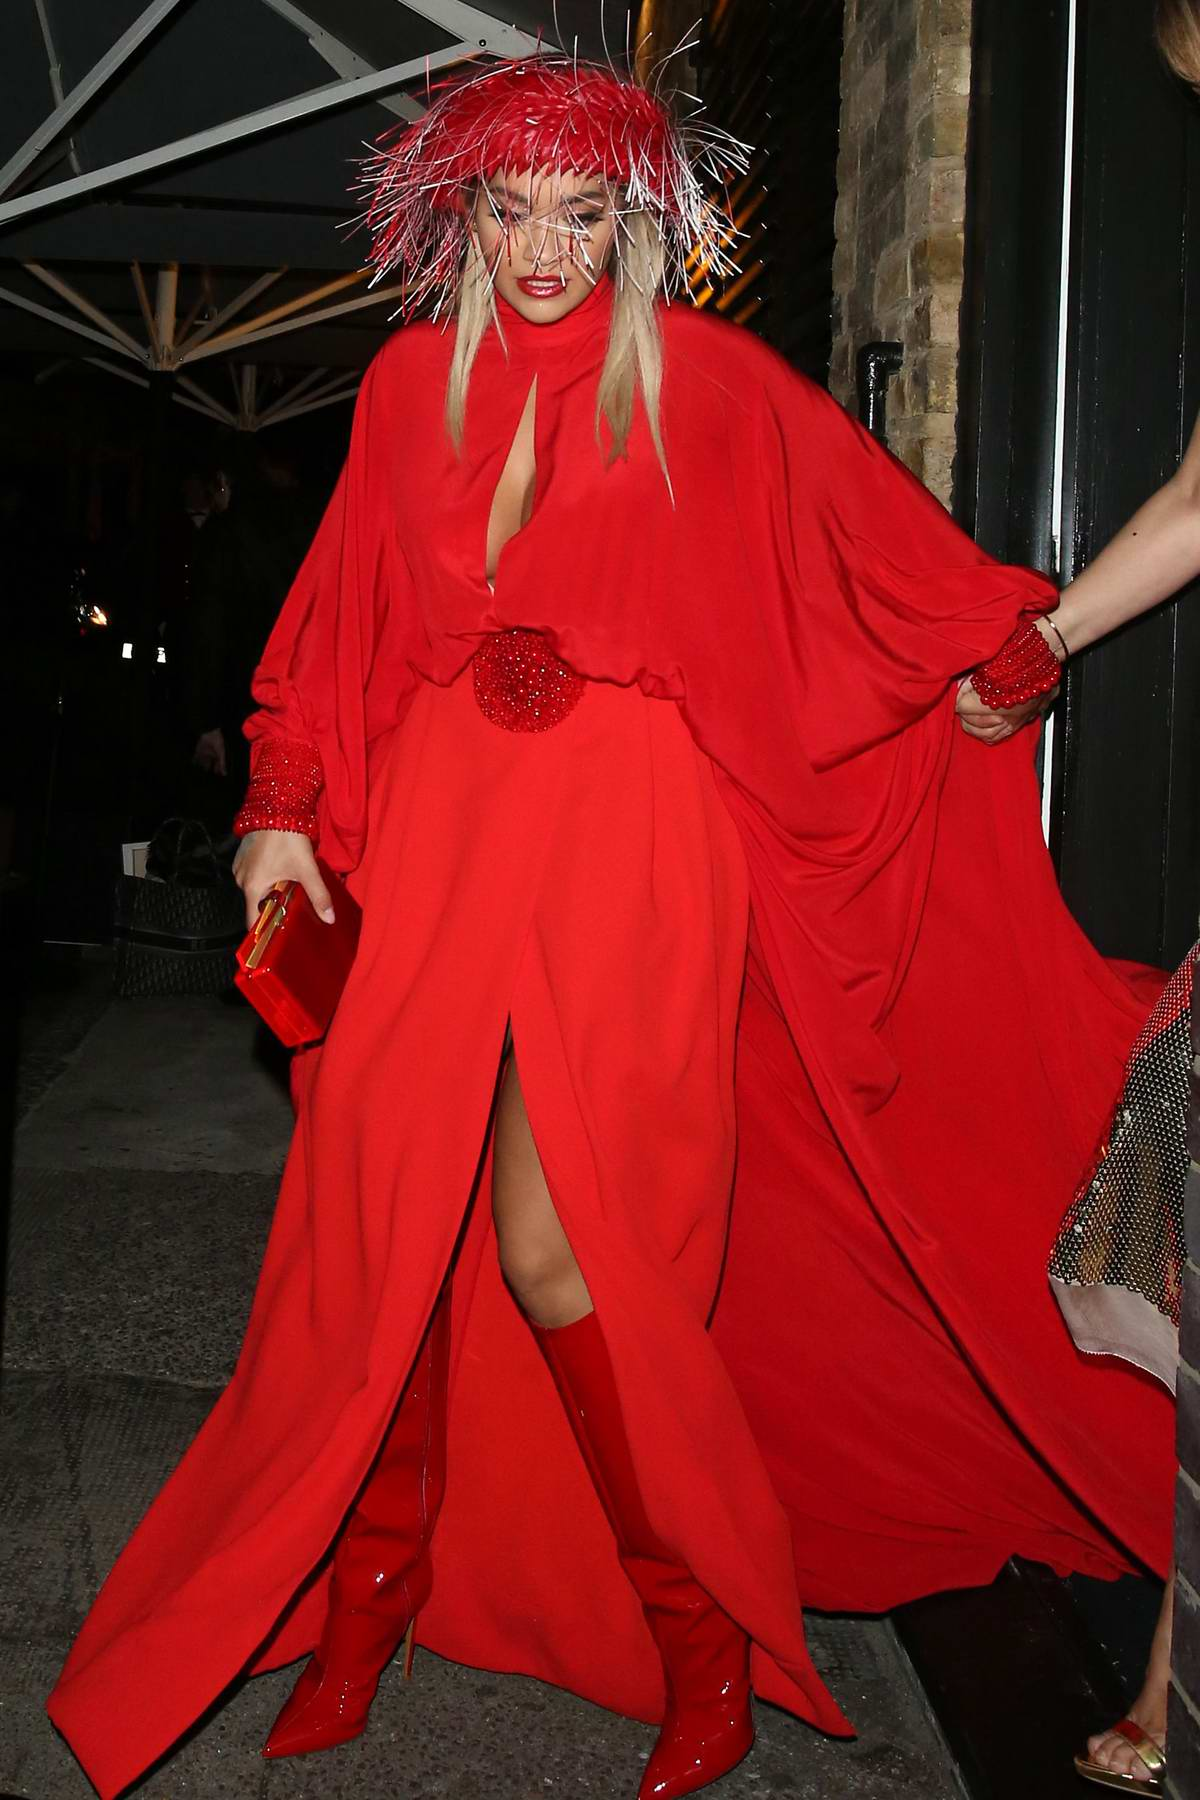 Rita Ora stands out in a bright red ensemble as she leaves Chiltern Firehouse in London, UK